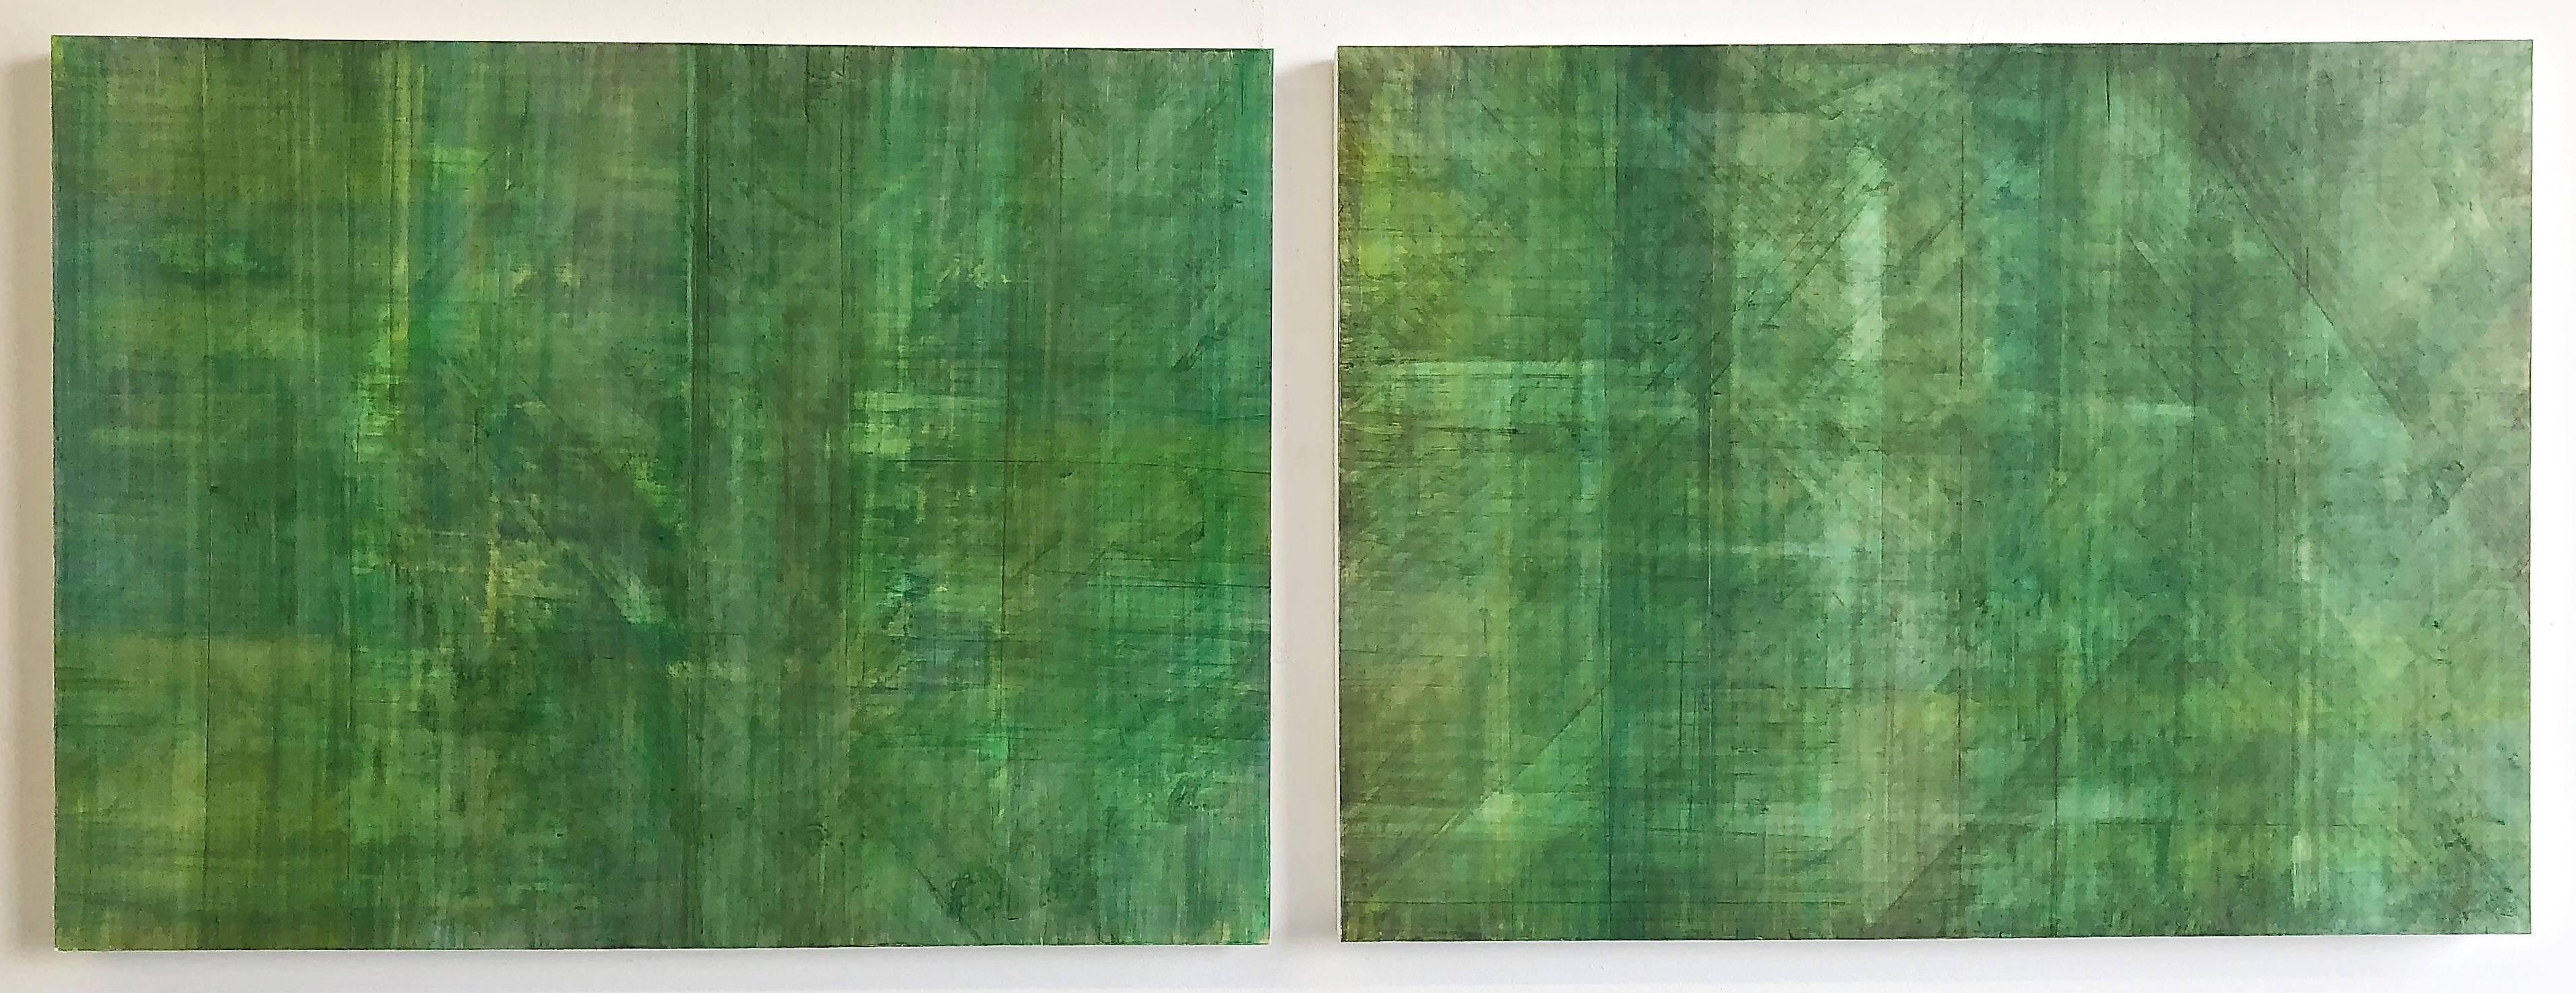 C14-10 (Minimalist Green Wall Sculpture in Two Panels, Diptych)